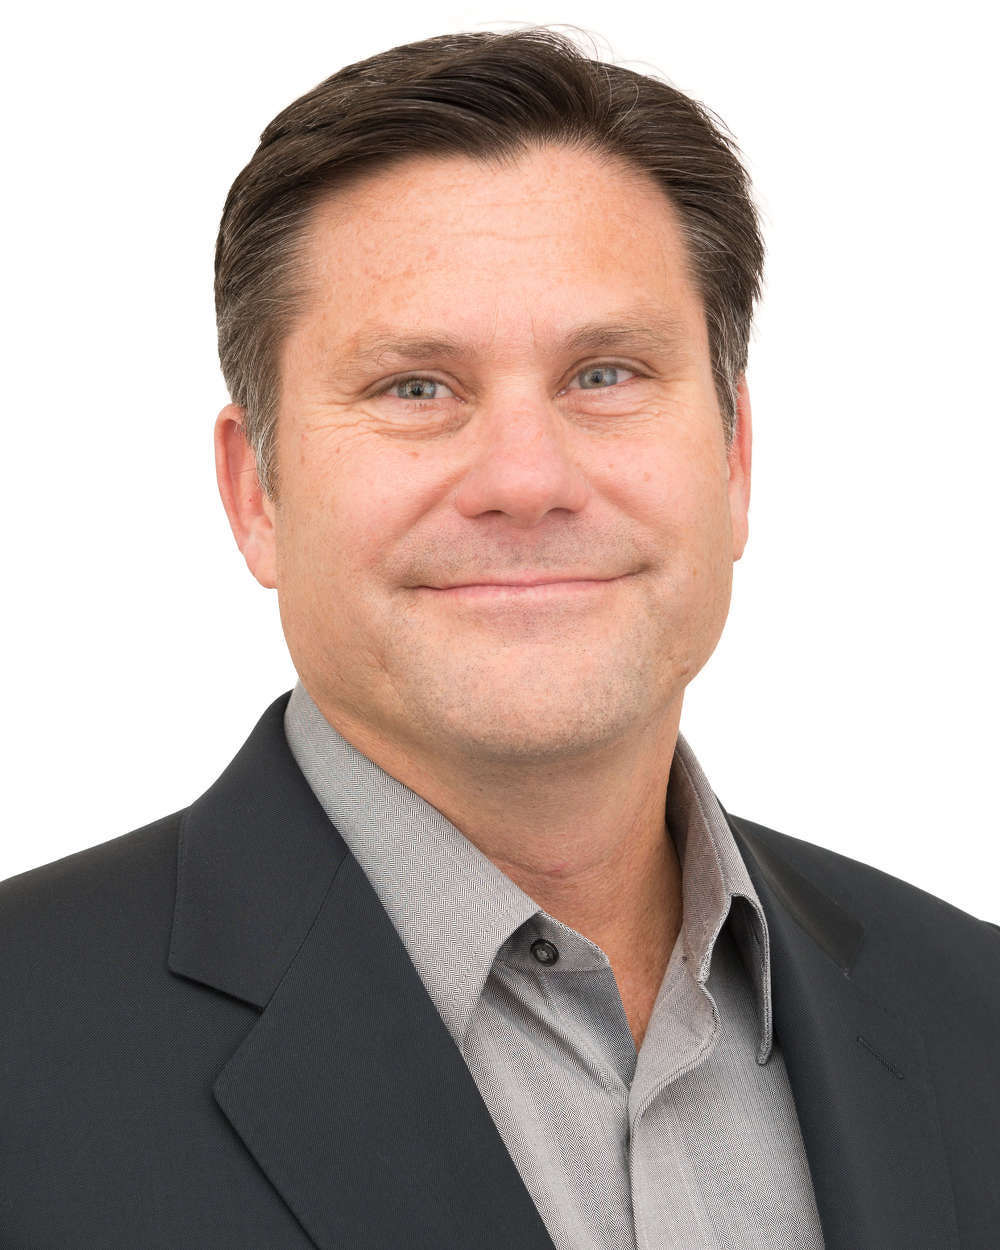 Jim Barr, group president, emerging businesses, brand innovation and technology, Ritchie Bros.